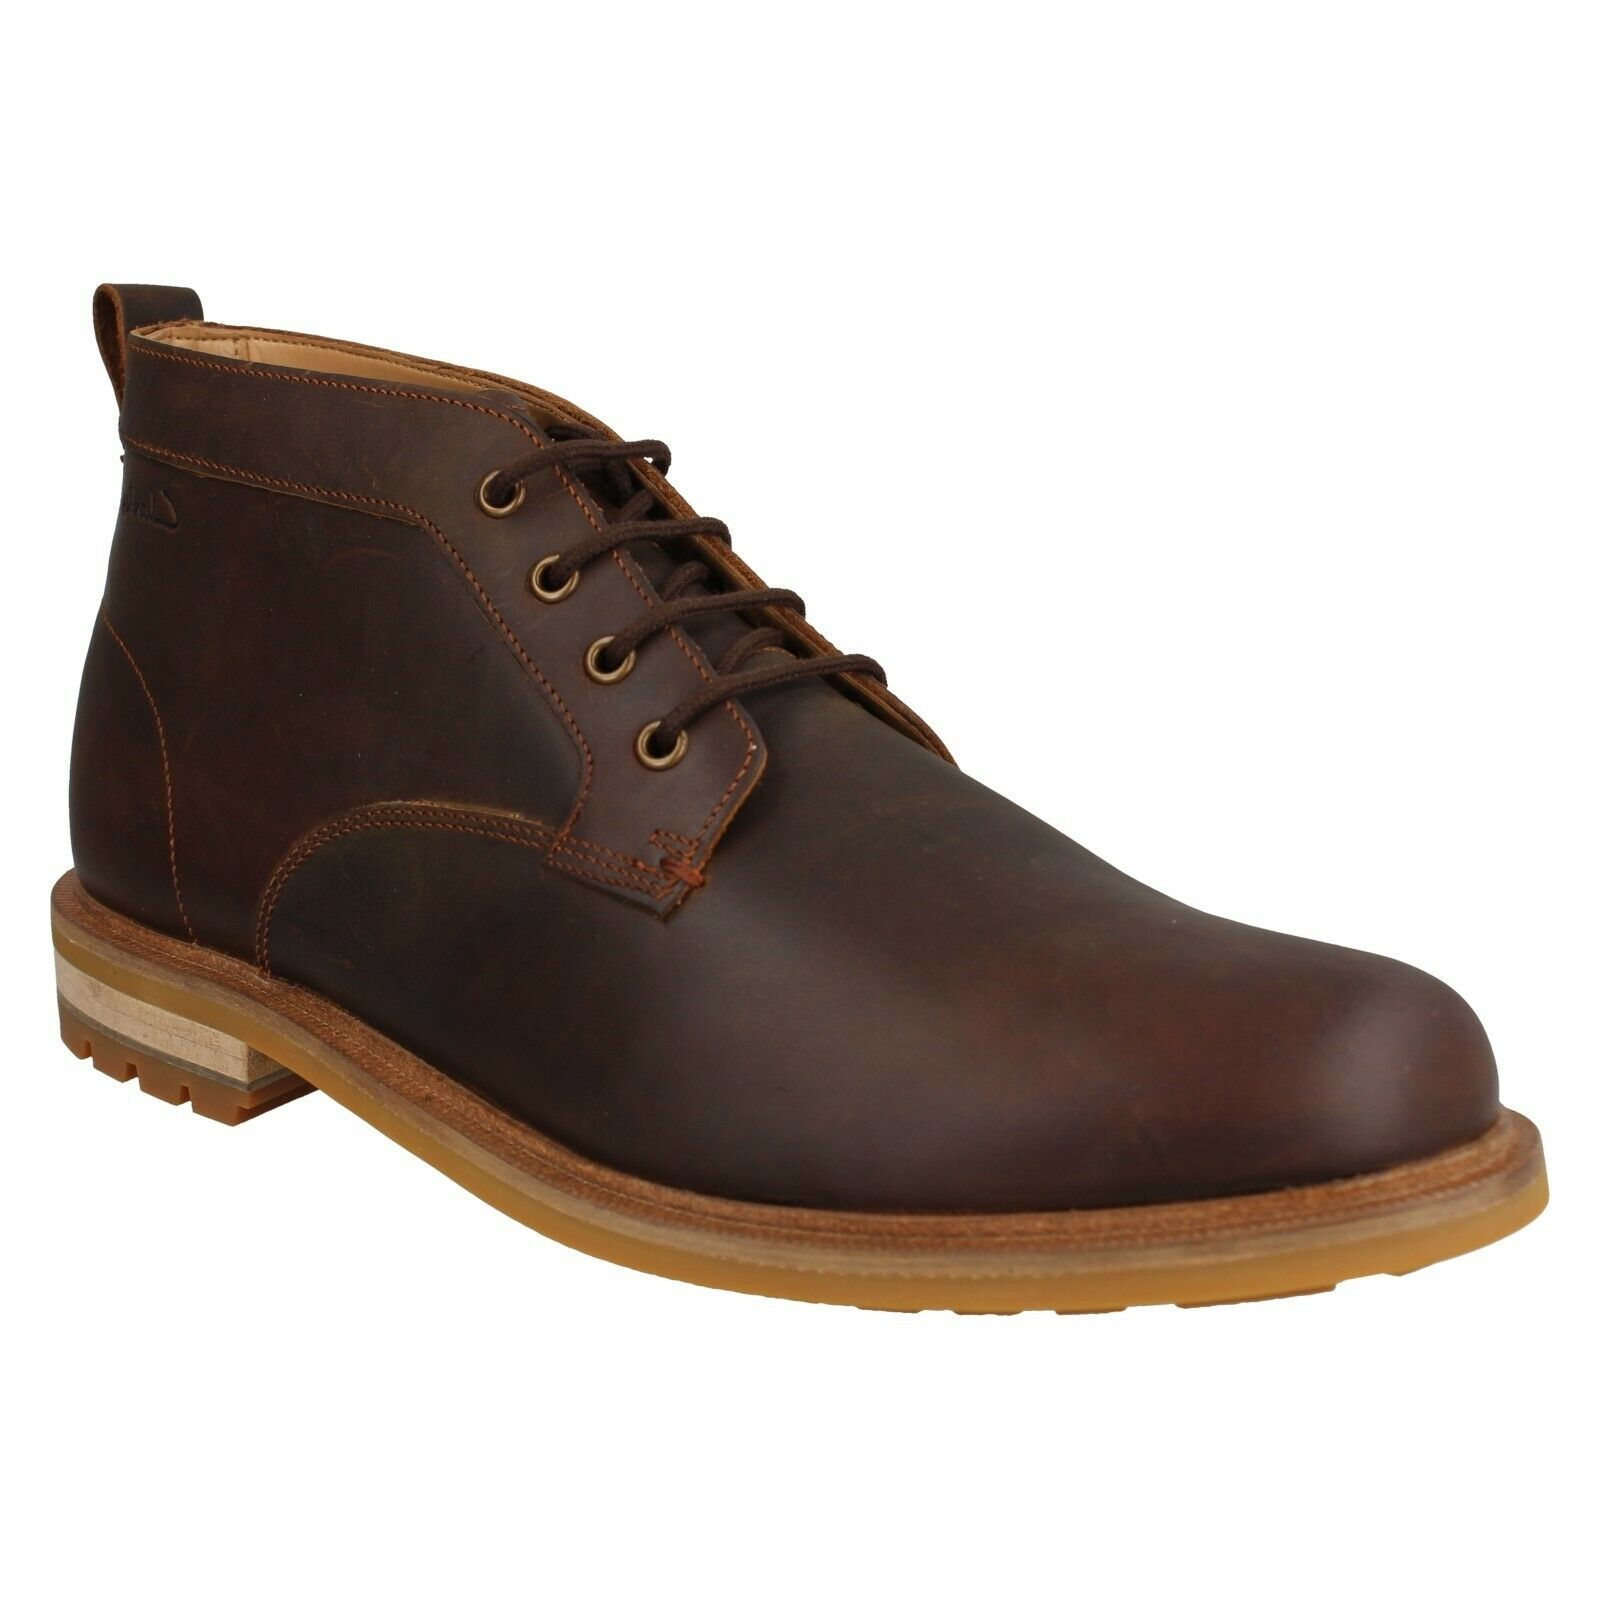 FOXWELL MID MENS CLARKS SMART CASUAL LACE UP LEATHER COMFORT CHUKKA ANKLE BOOTS